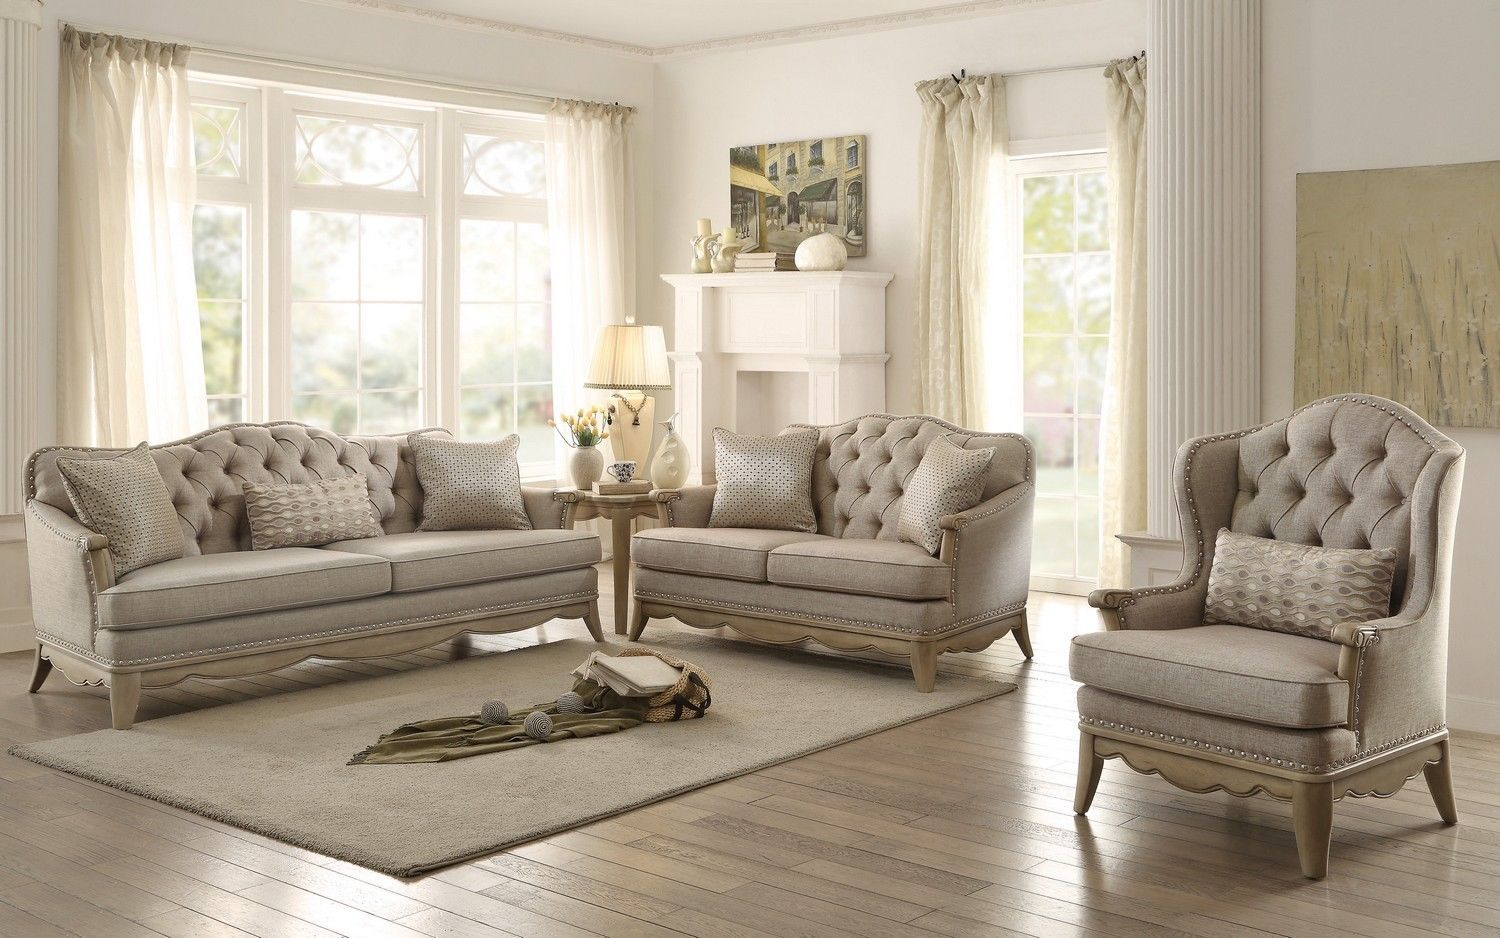 Formal Traditional Ashden Sofa Set 3Pc Sofa Loveseat Chair Living Room